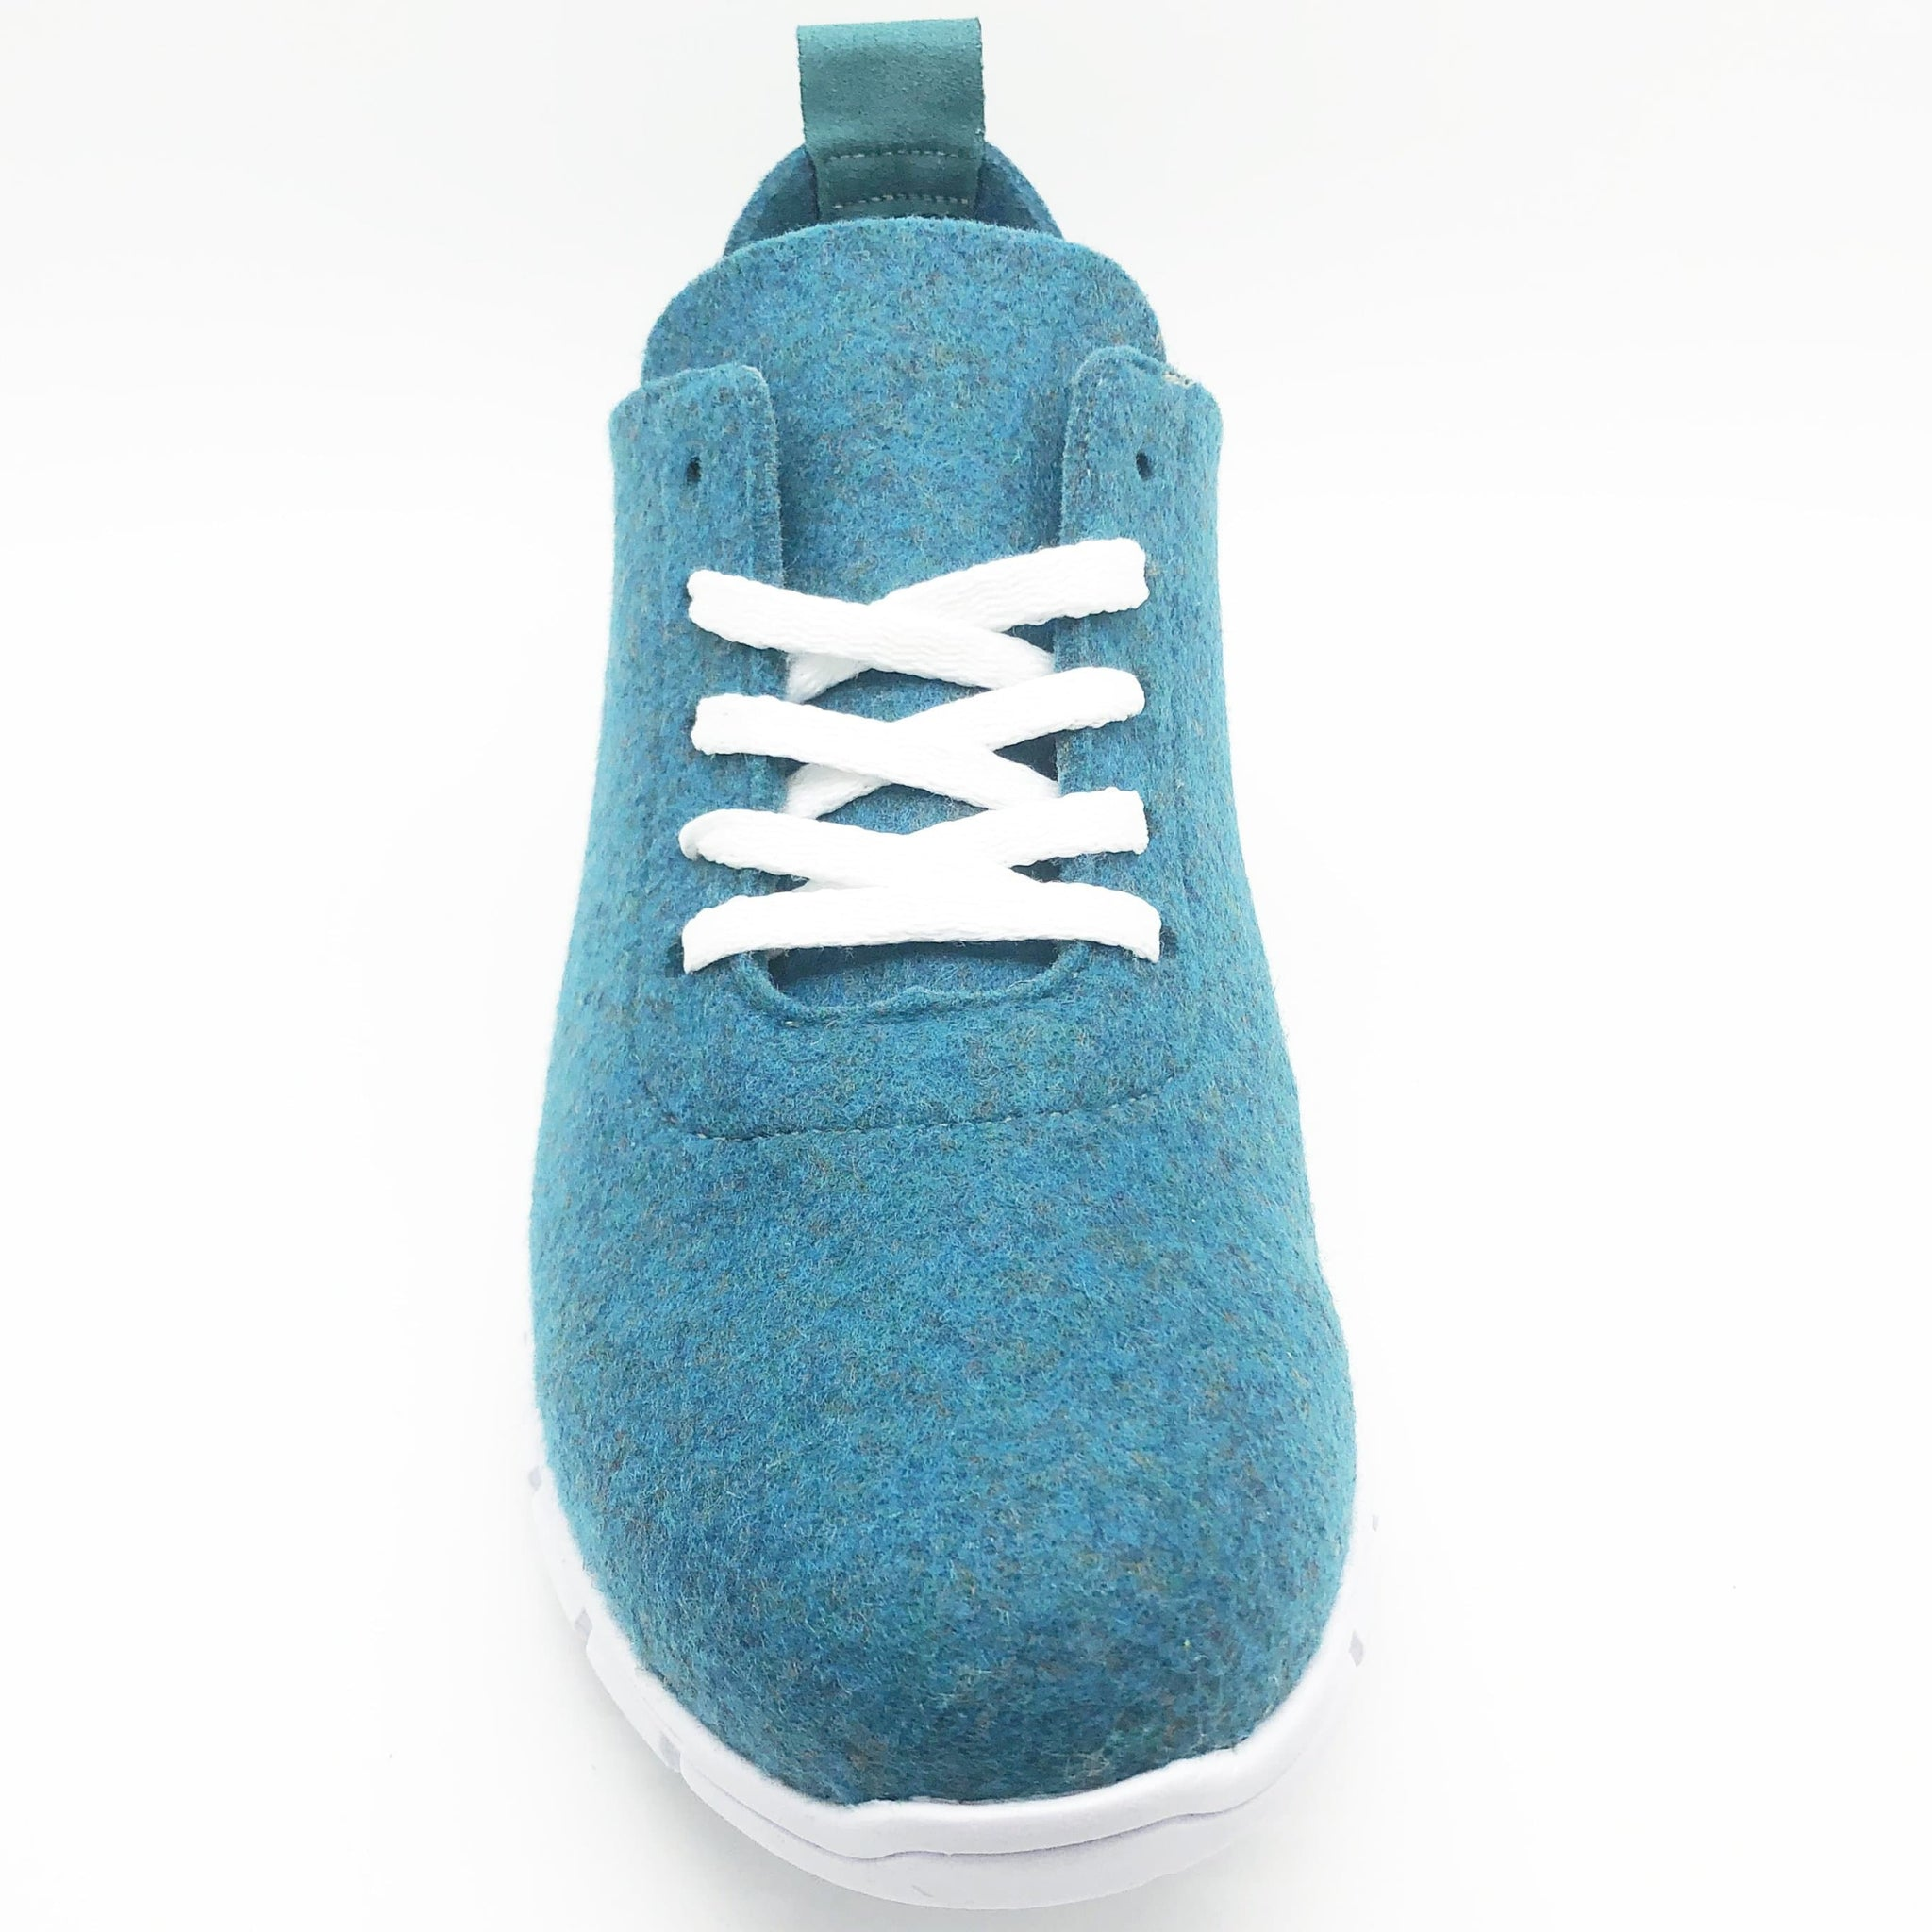 NAT 2 footwear thies ® PET Sneaker petrol | vegan aus recycelten Flaschen sustainable fashion ethical fashion